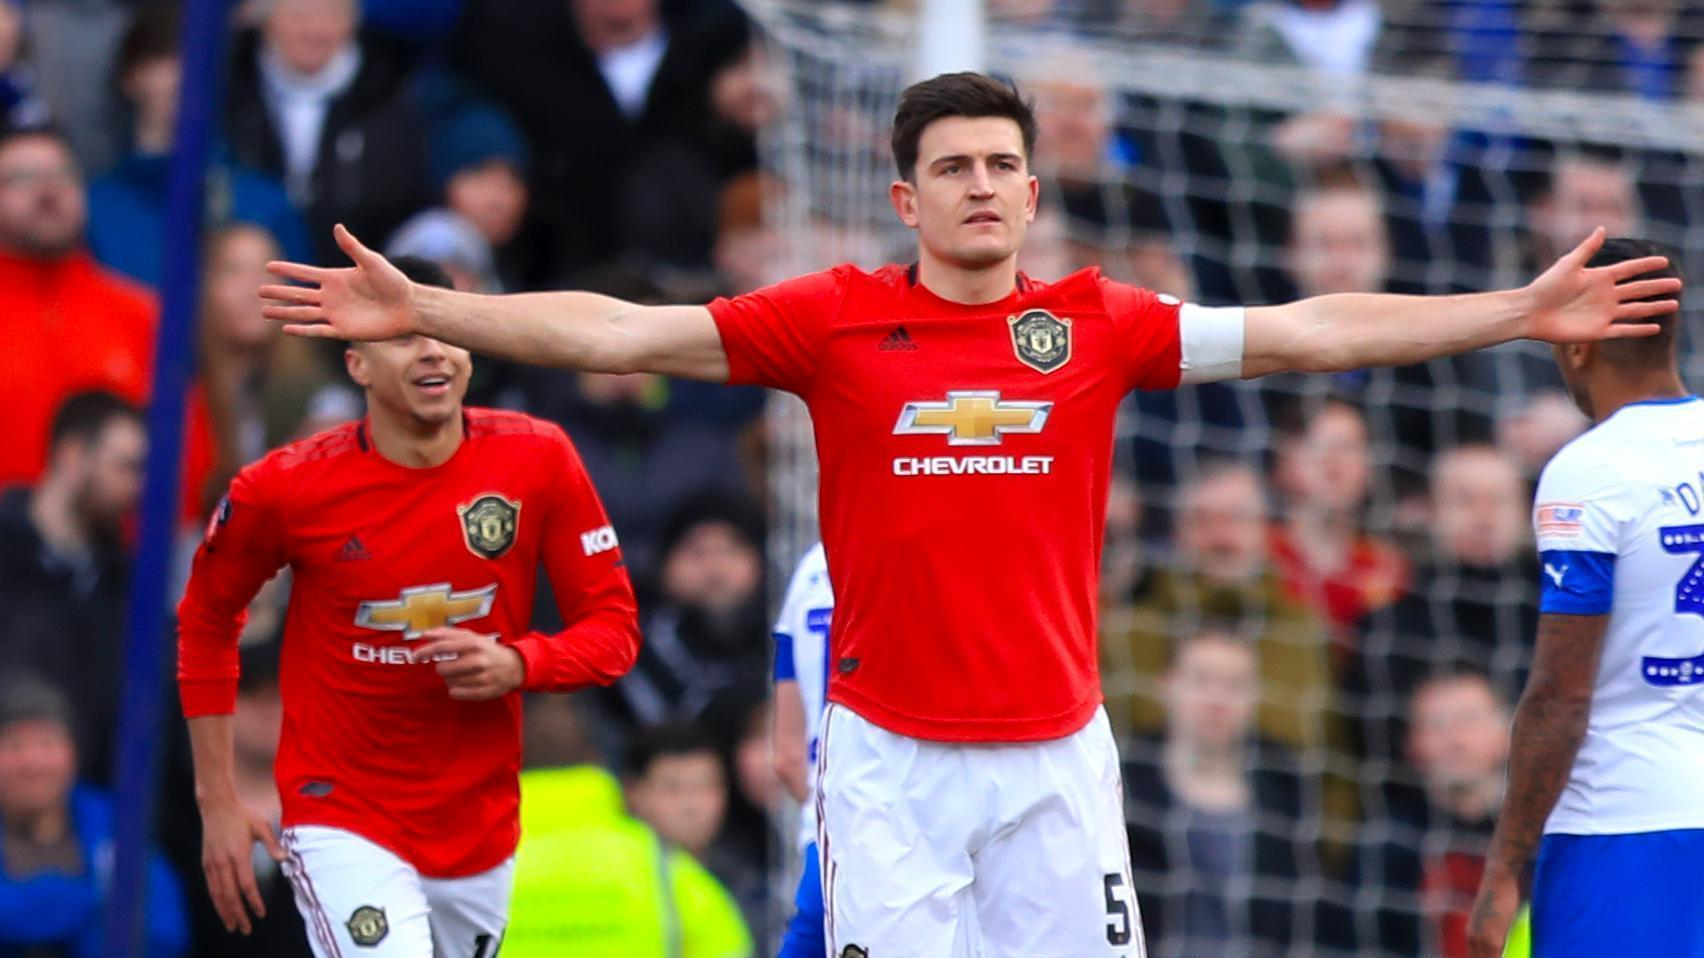 Harry Maguire's first Manchester United goal is a beauty